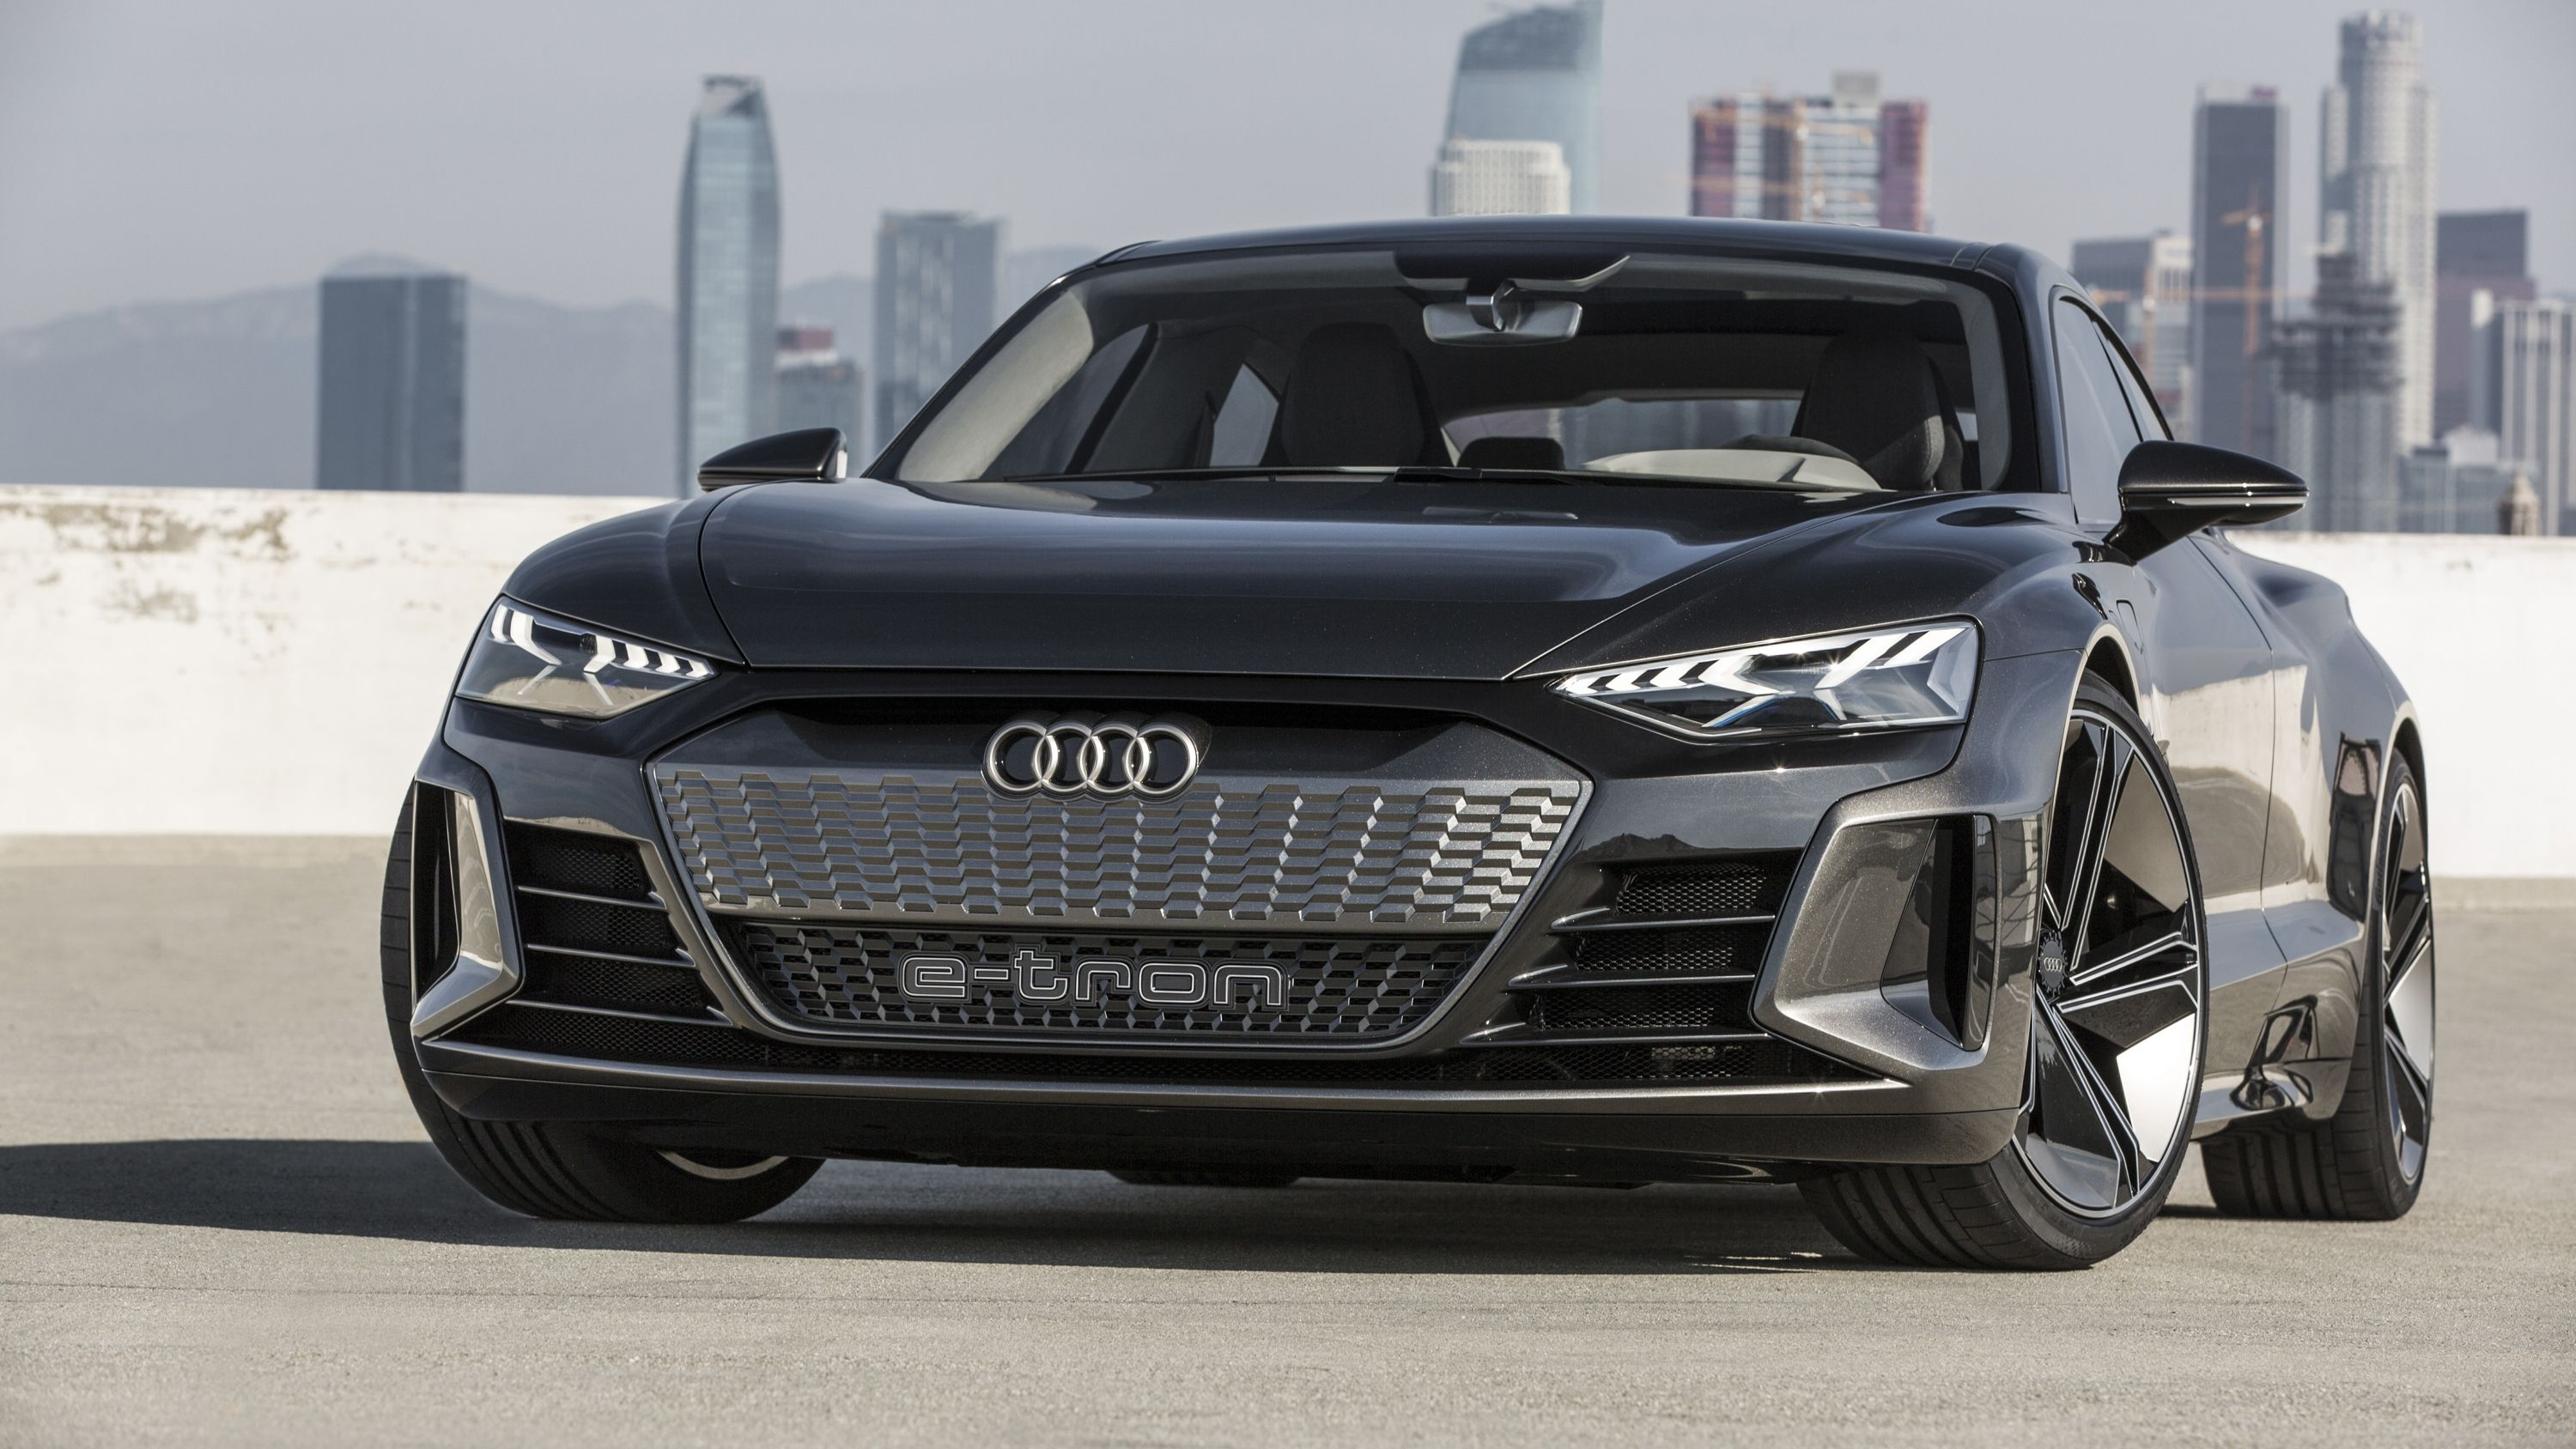 Don T Expect The 2020 Audi E Tron Gt Or Any Other Audi Ev To Ditch The Massive Grille Audi E Tron Audi Sports Car Porsche Taycan